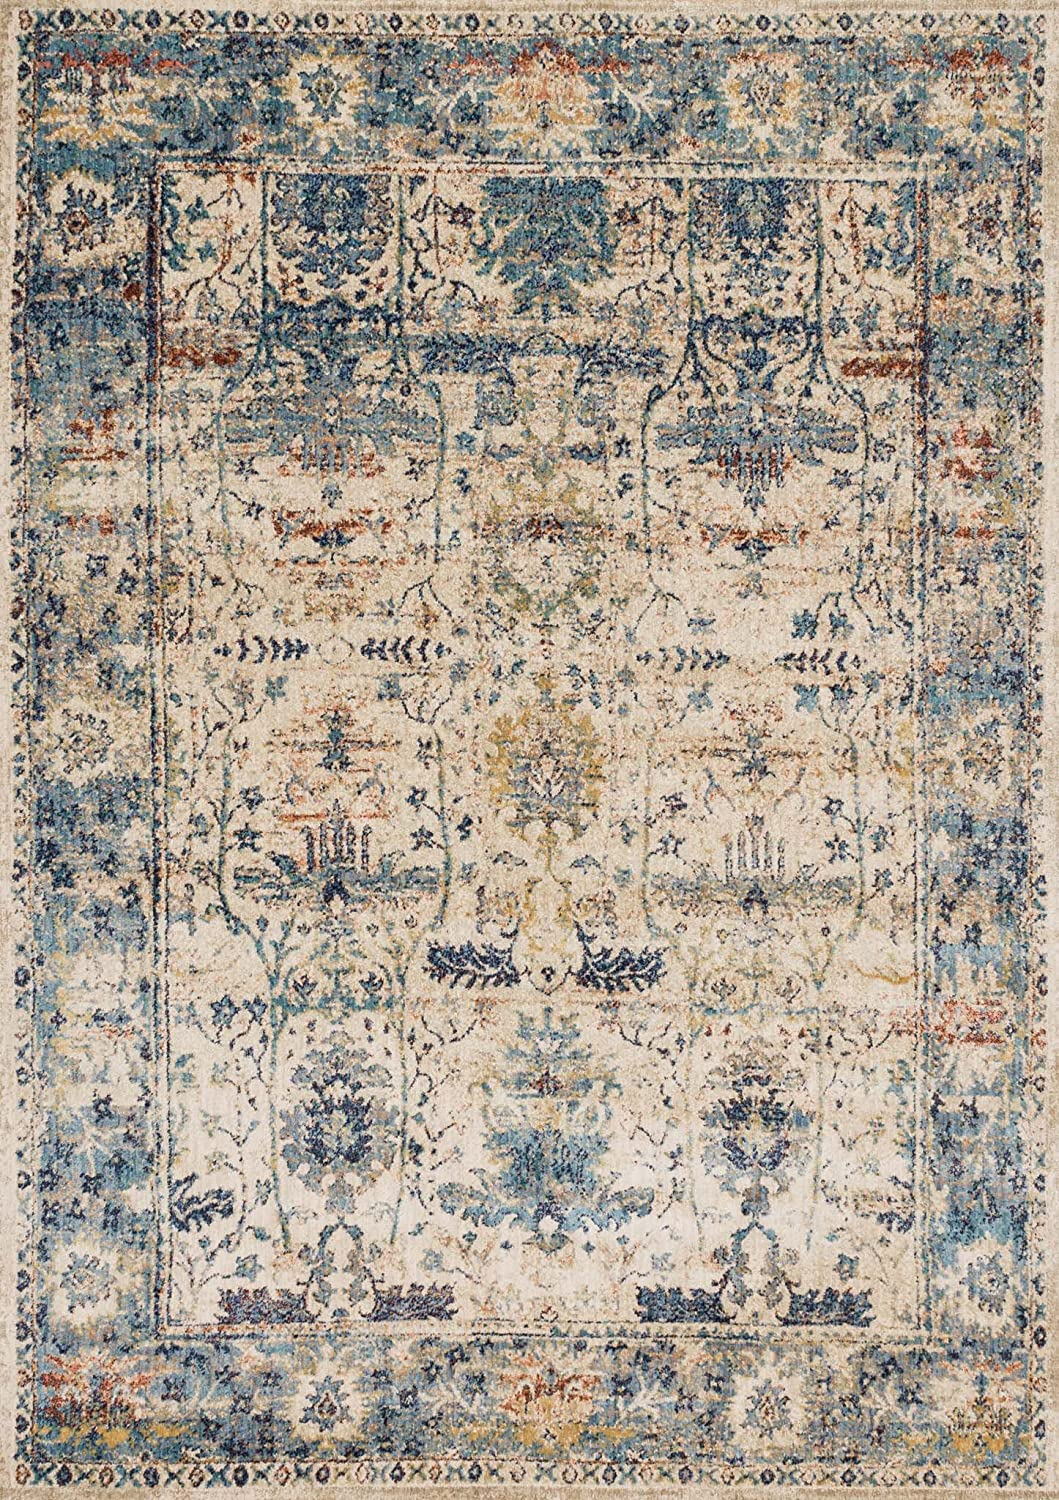 x square goingrugs kt sample ivory product in rug rugs kingston loloi blue area kgstkt lg